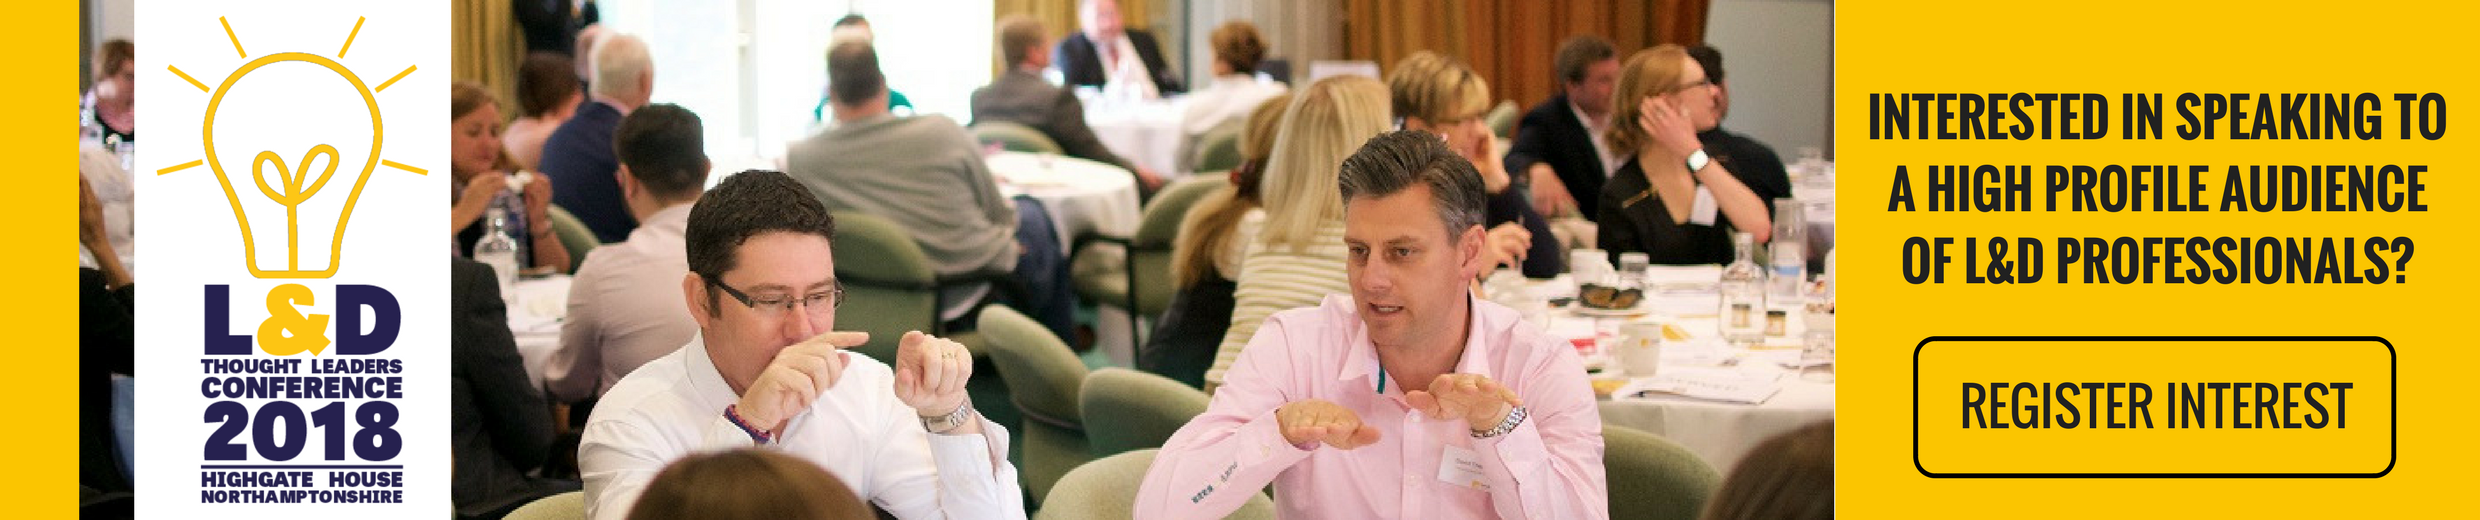 Interested in speaking at our L&D thought leaders conference? Register here